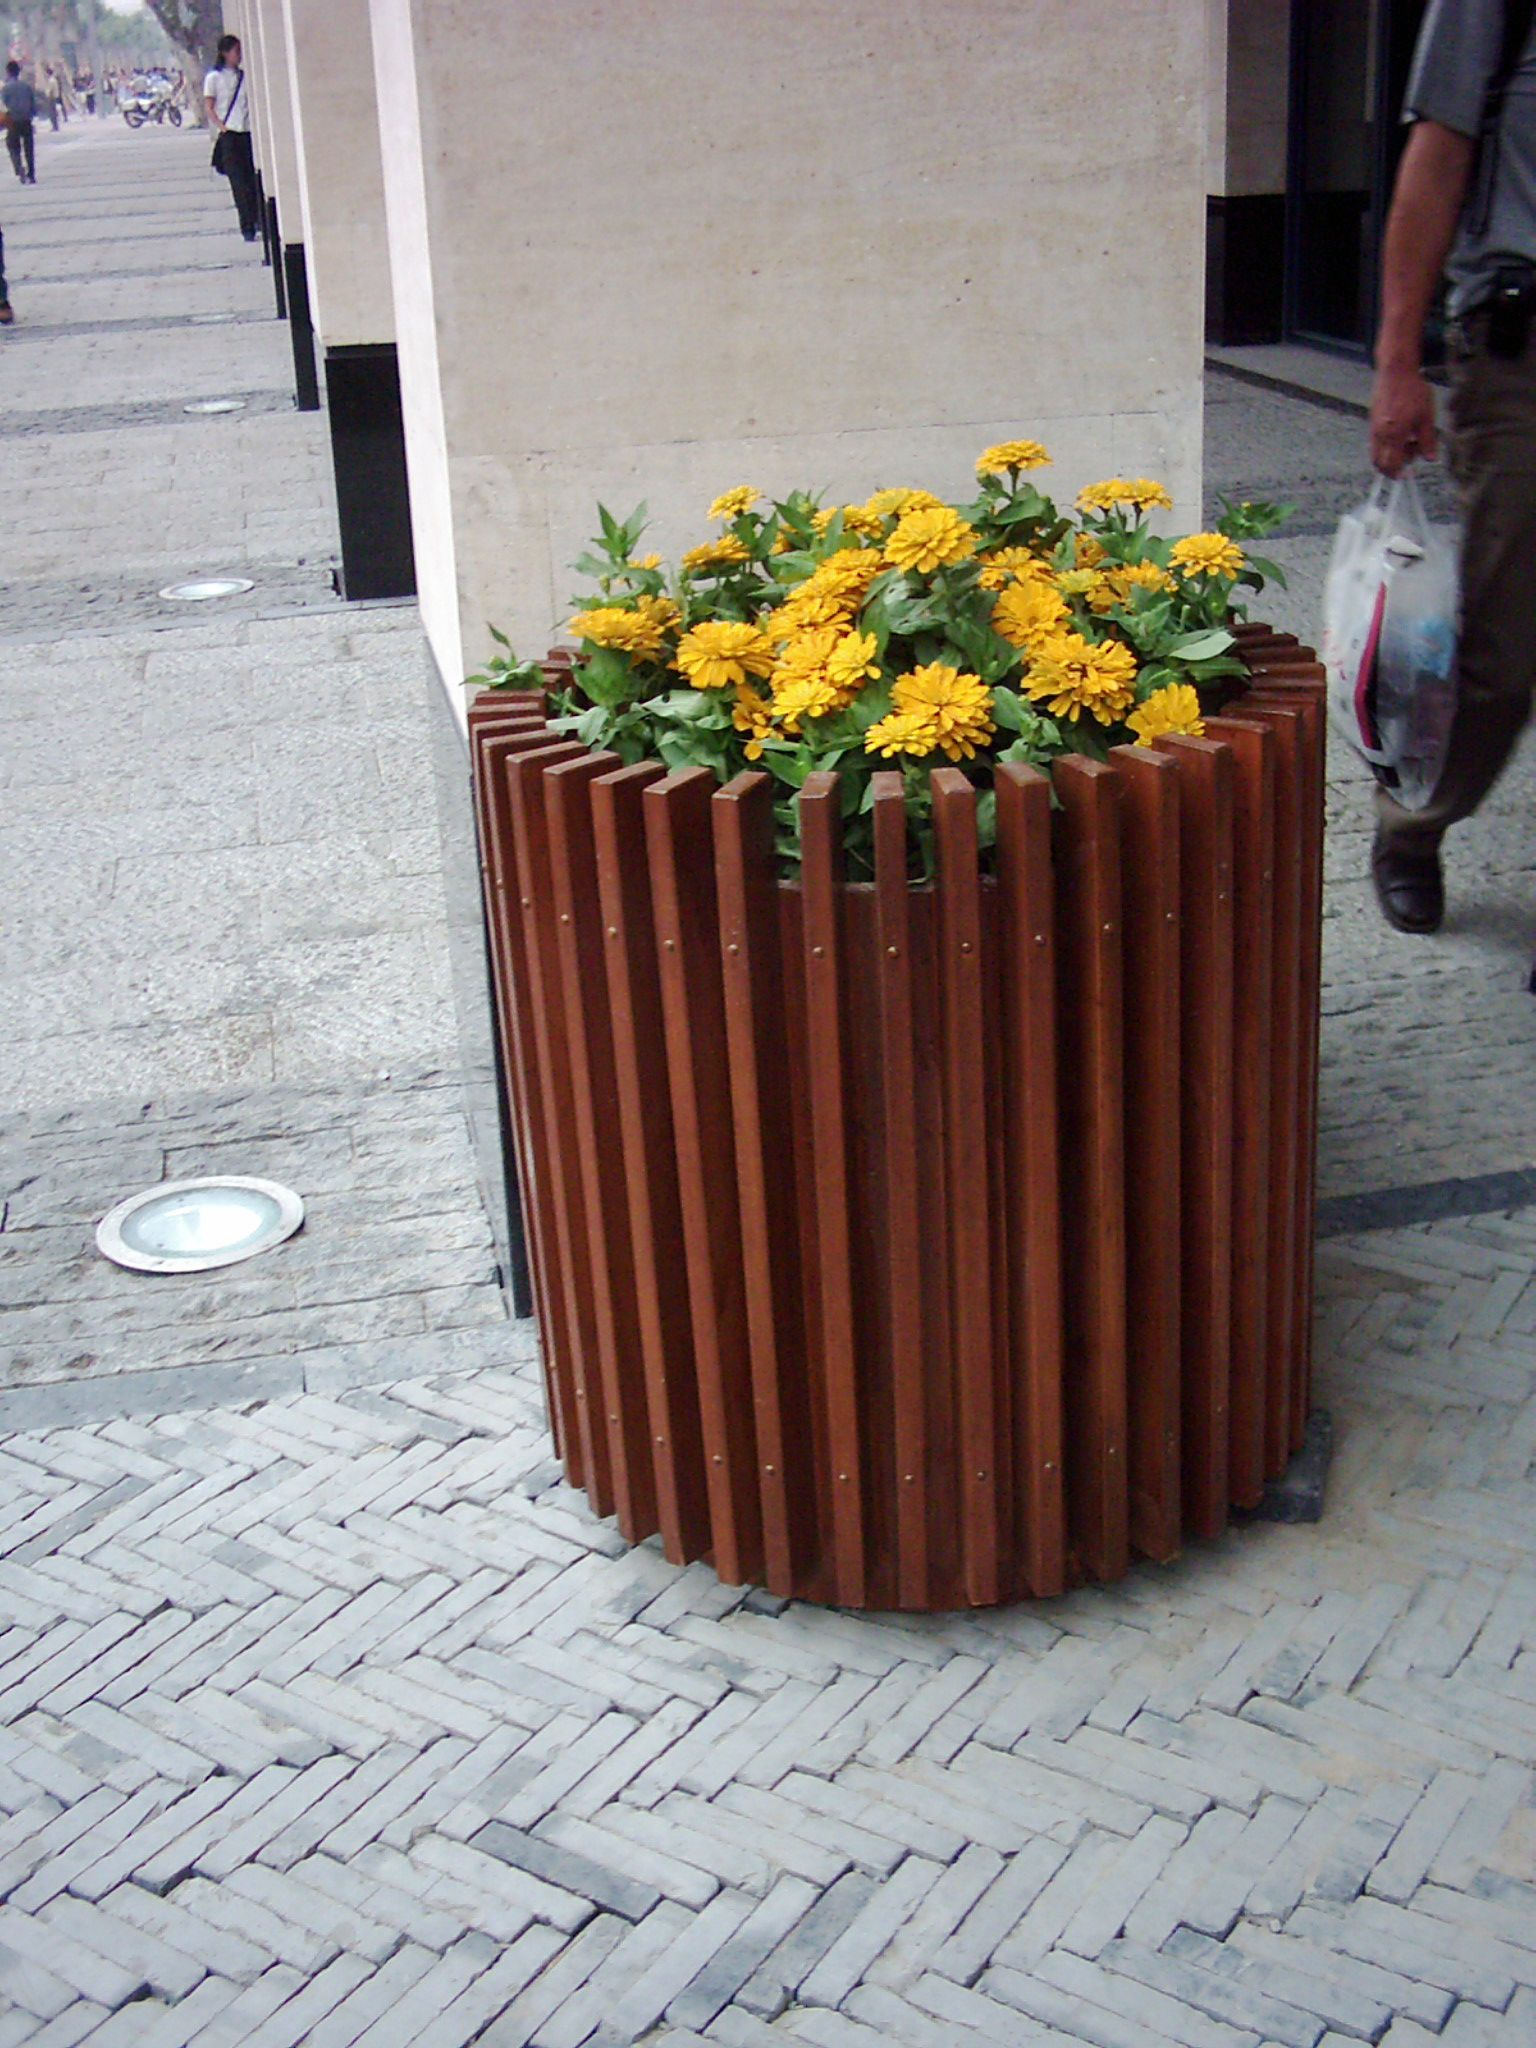 Composite Flower Containers In Ireland Plastic Wood Round Planter Flower Crate Container Flowers Flower Planters Flower Pots